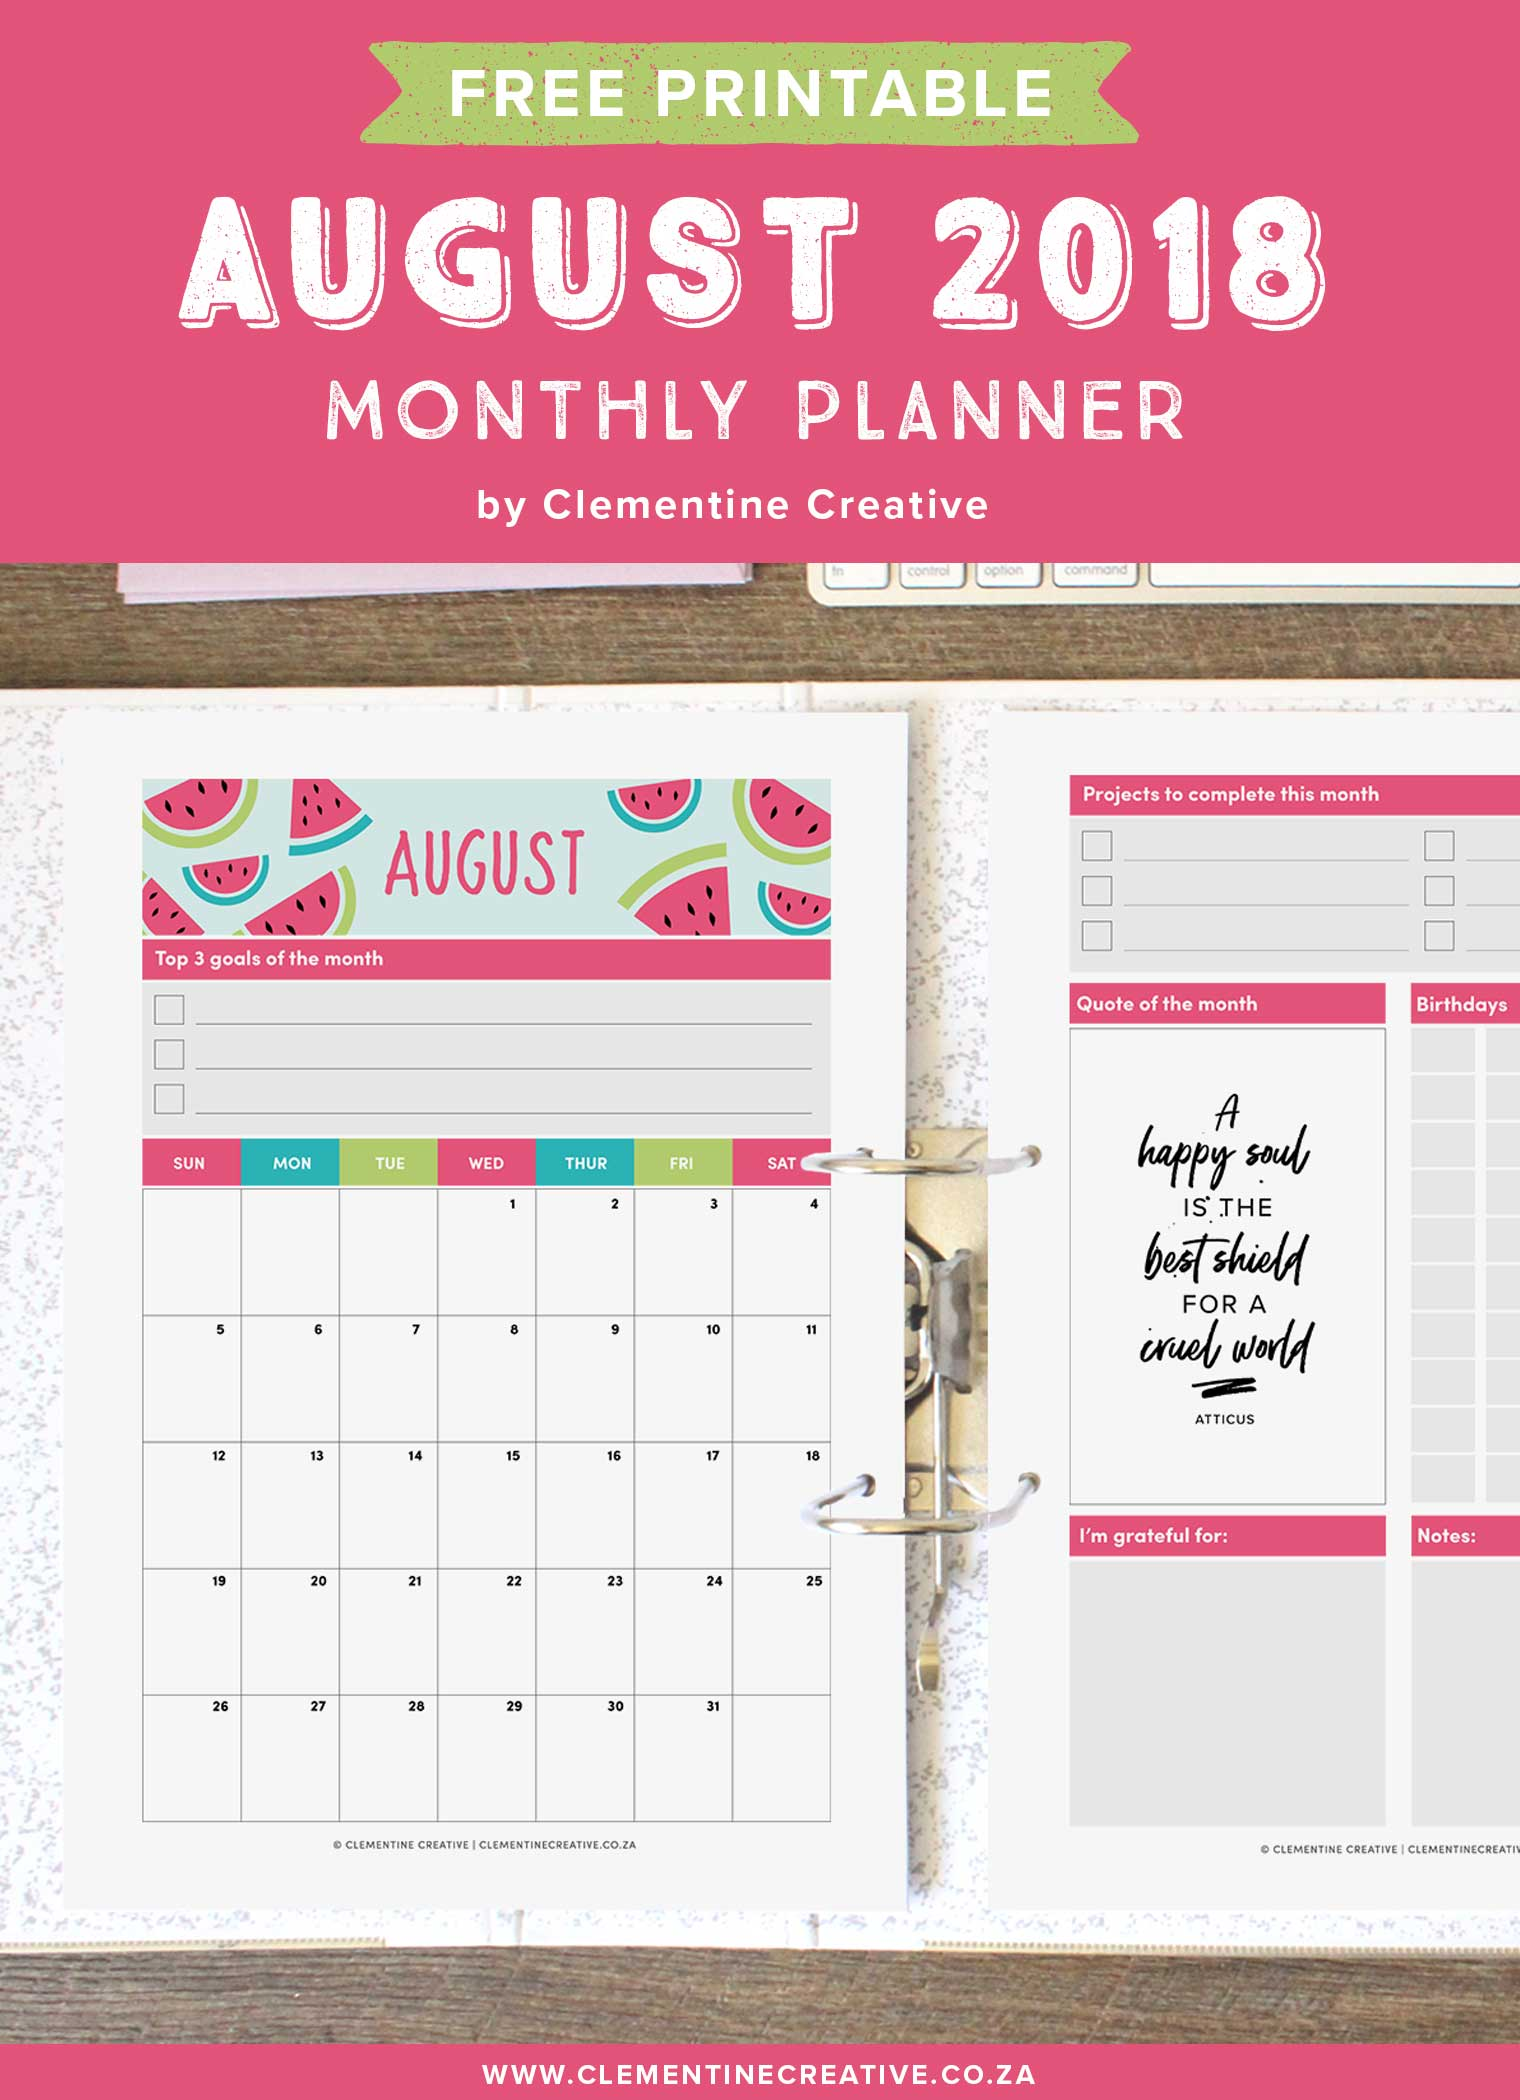 Free printable August 2018 monthly planner.